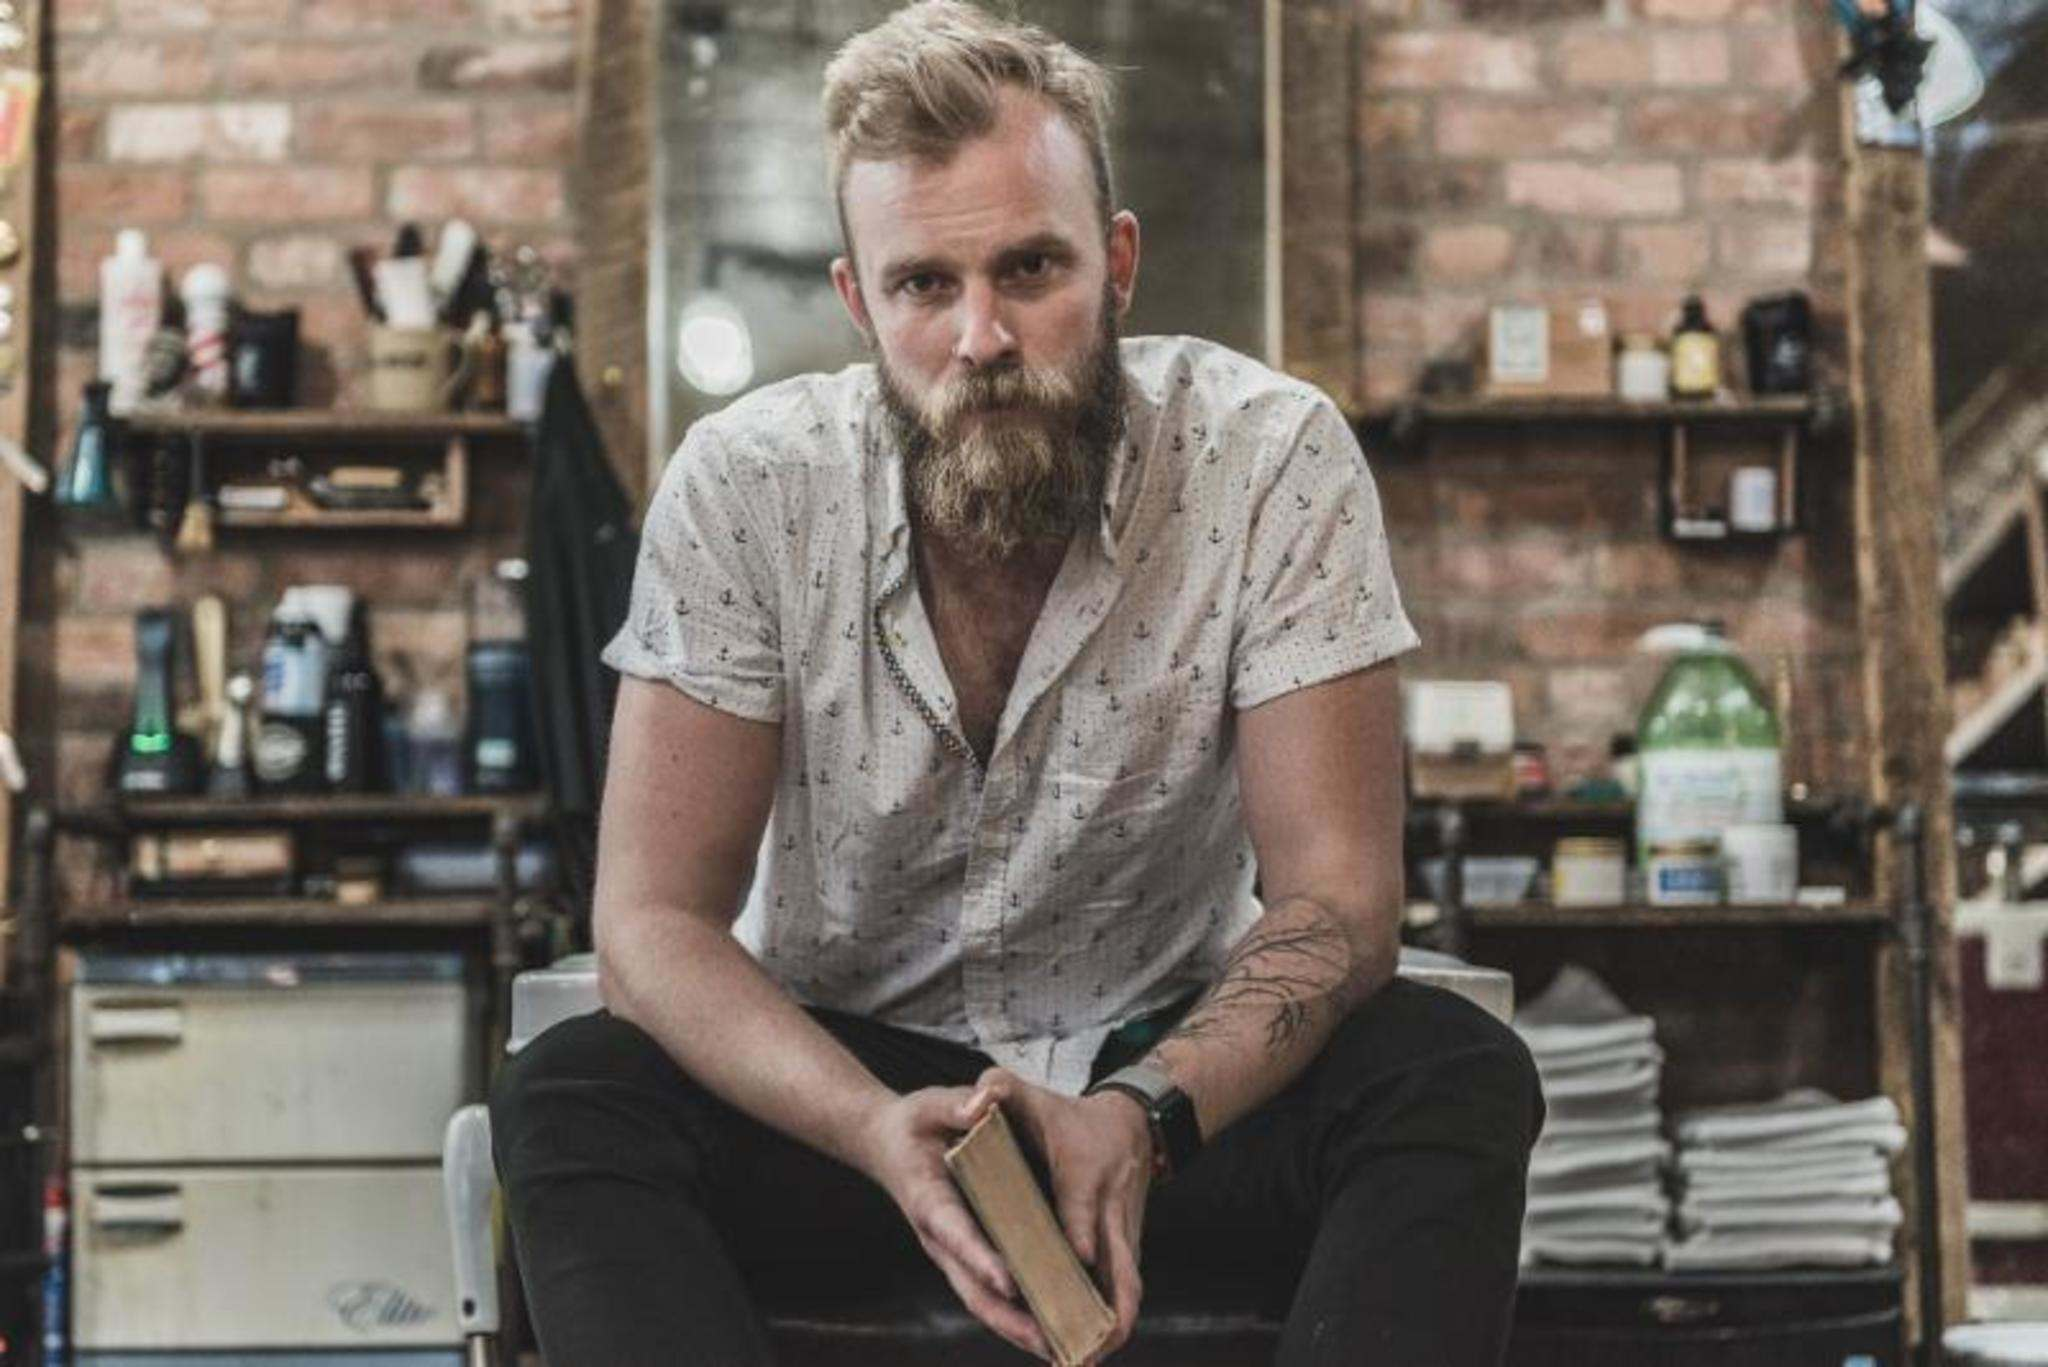 Joey Landreth releases his sophomore album, Hindsight, at the intimate Times Change(d) on Tuesday. (Supplied)